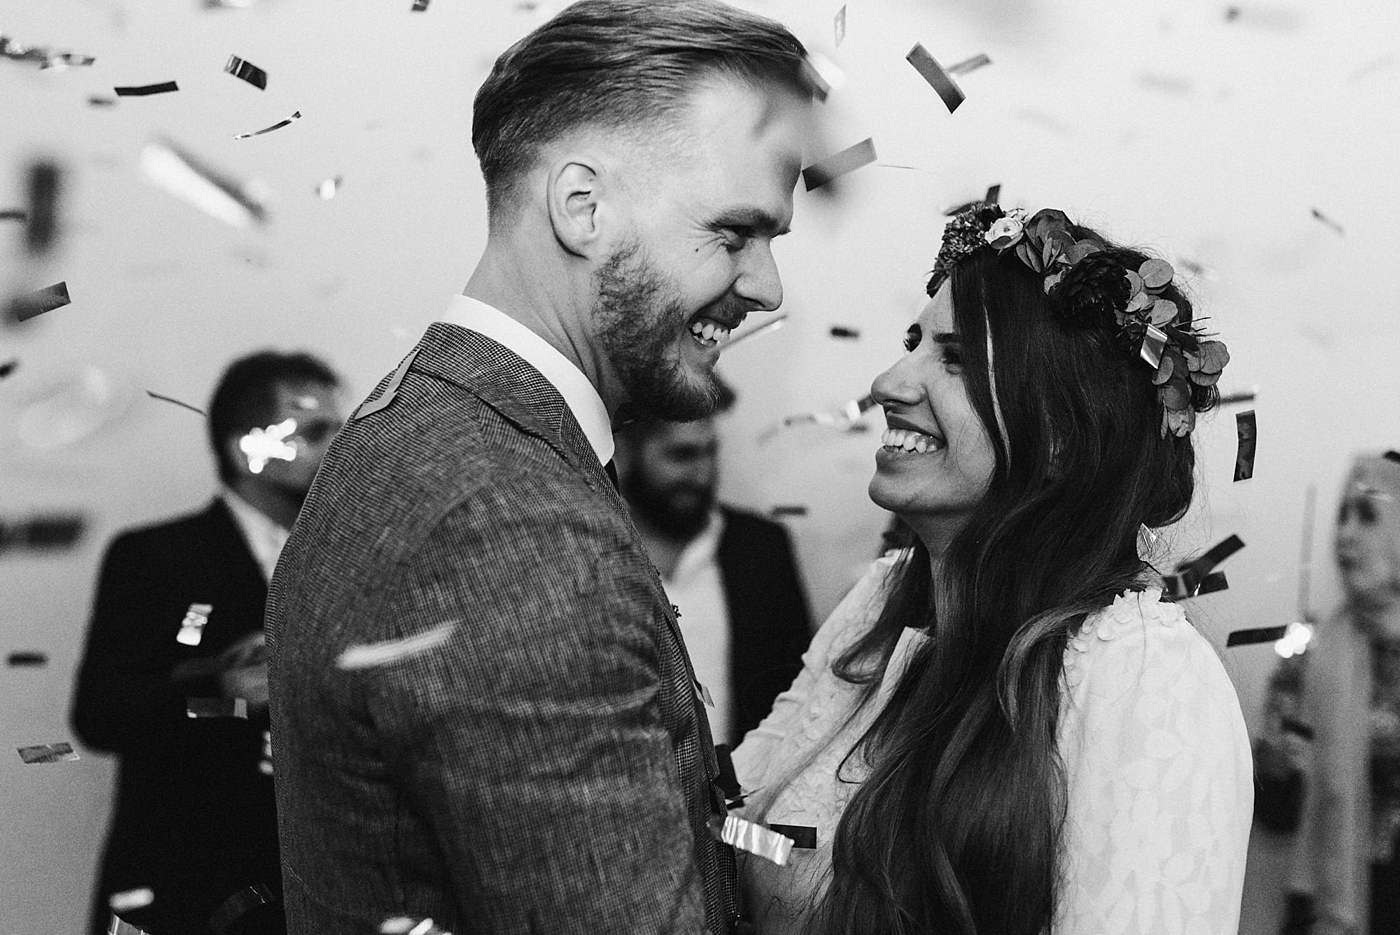 urban-elopement-wedding-273 Merve & Nils emotionales Elopement - Wedding Wesel & Schottlandurban elopement wedding 273 1